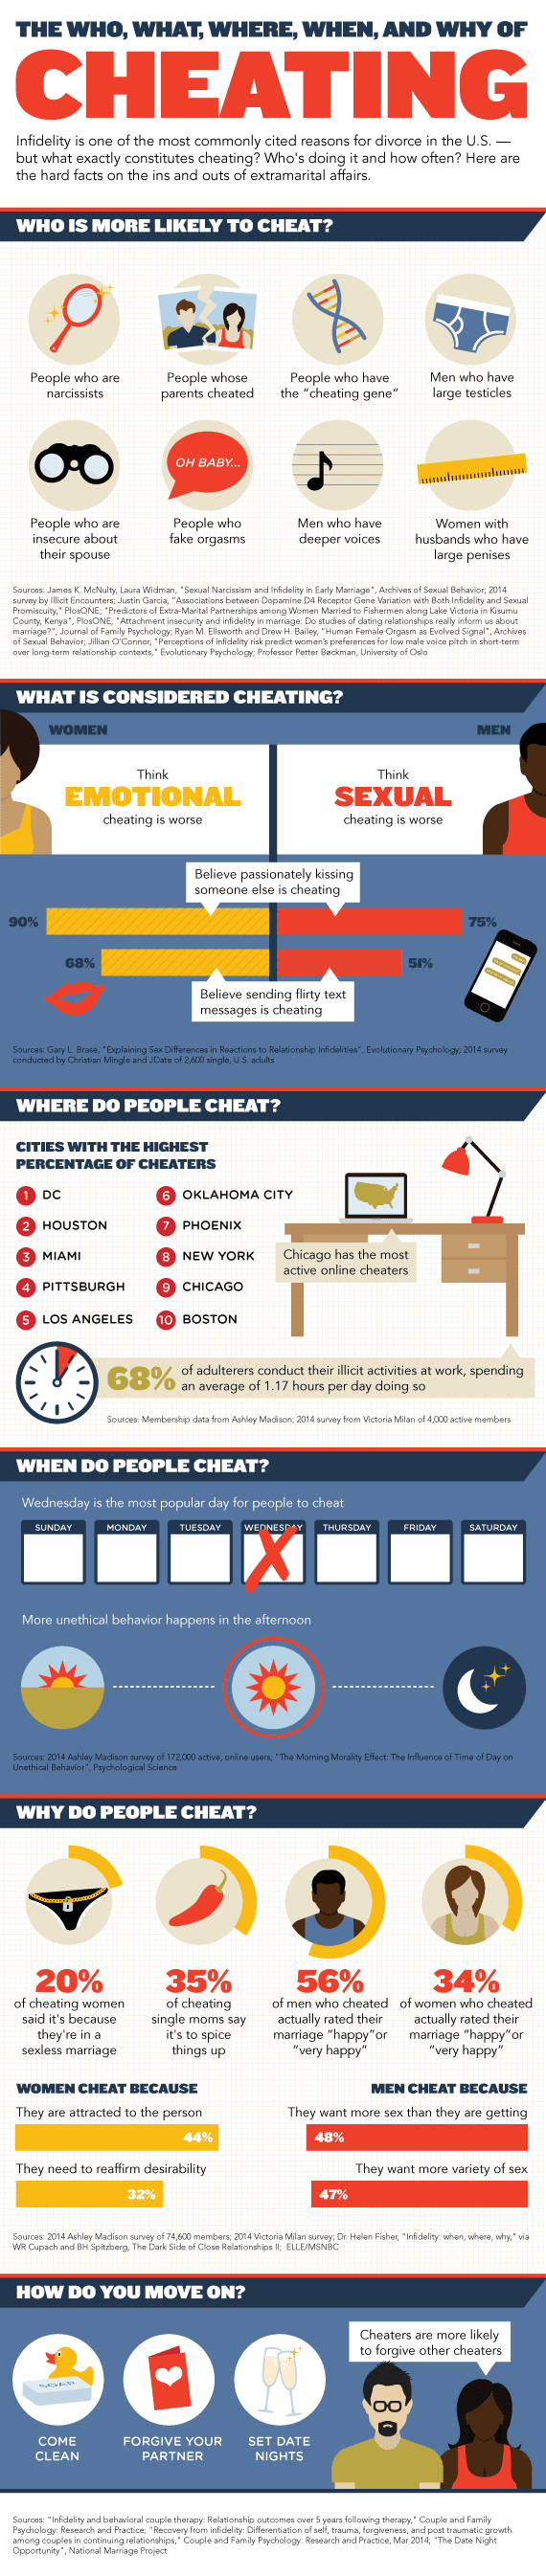 Infographic: The Who, What, Where, When, And Why of Cheating #infographic